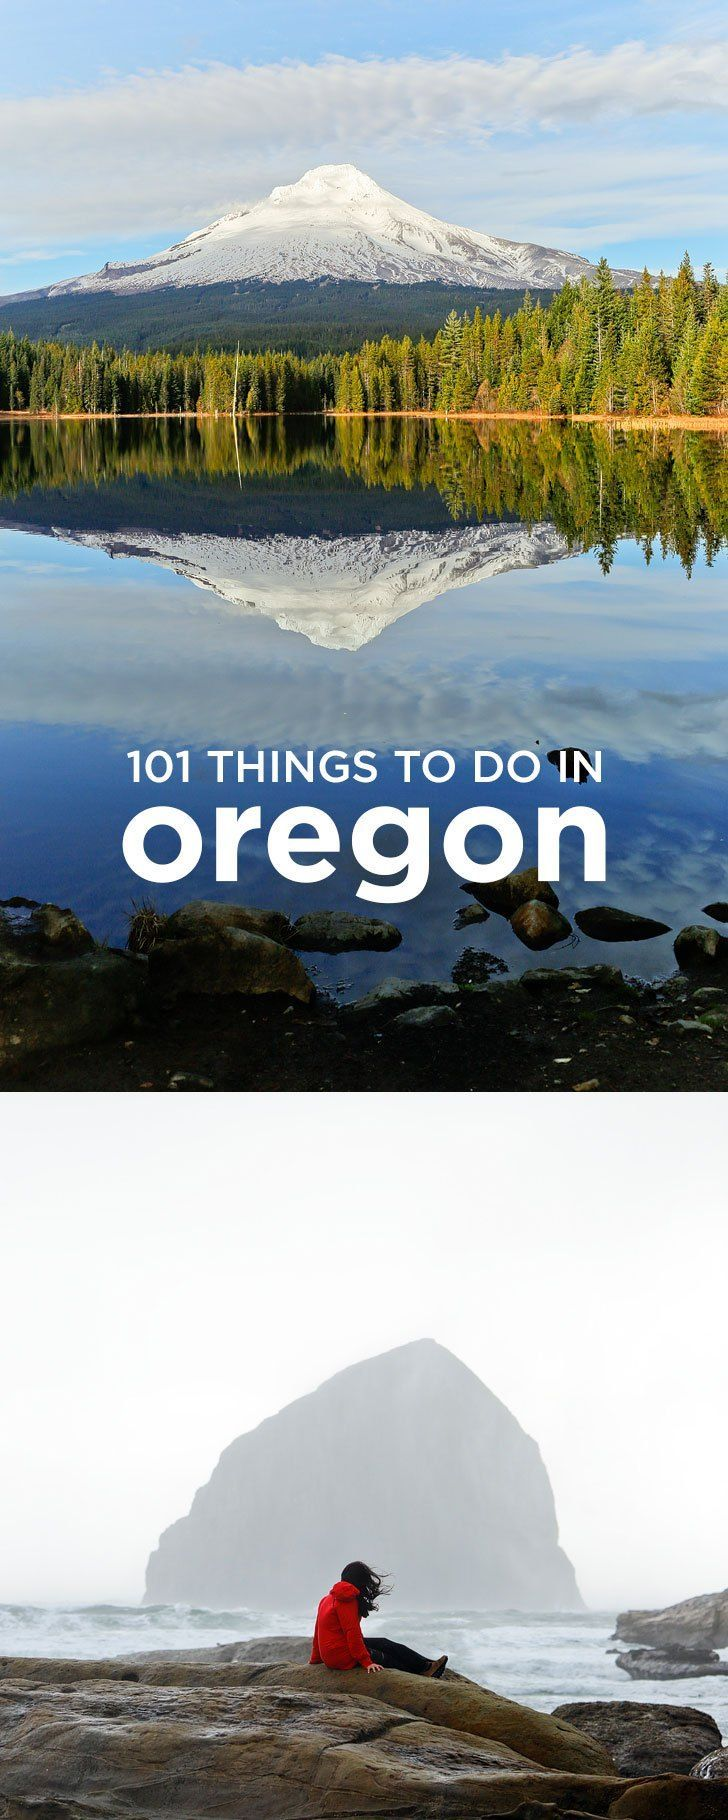 101 Things to Do in Oregon by Region - Greater Portland, the Gorge, Oregon Coast, Willamette Valley, Central Oregon, Eastern Oregon, and Southern Oregon // localadventurer.com